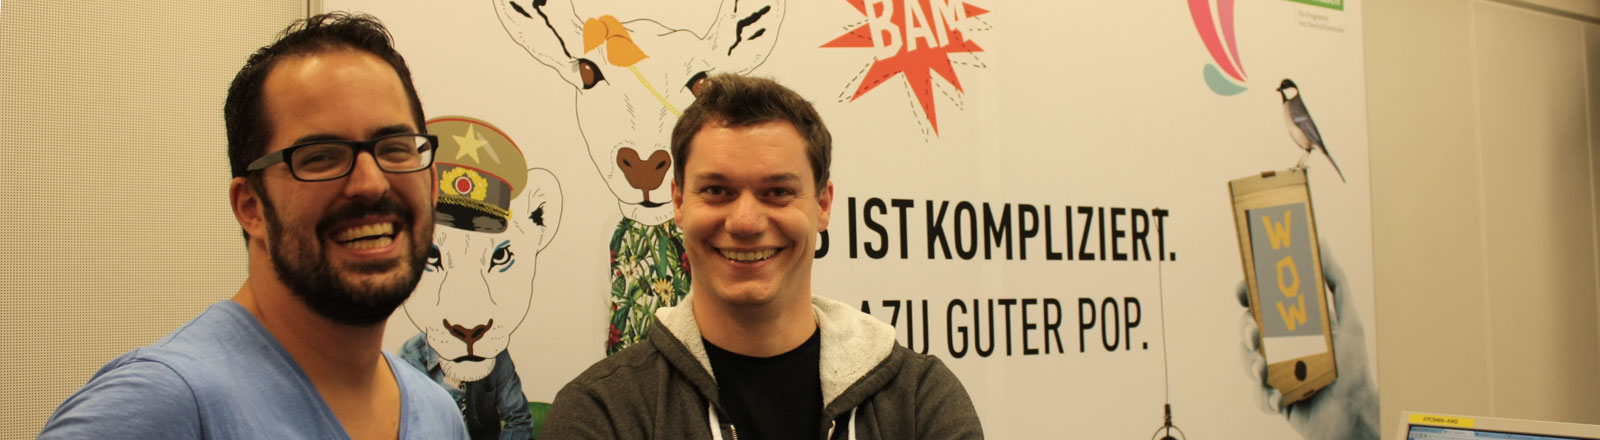 Ben Berger. deutscher Scrabble-Meister 2014